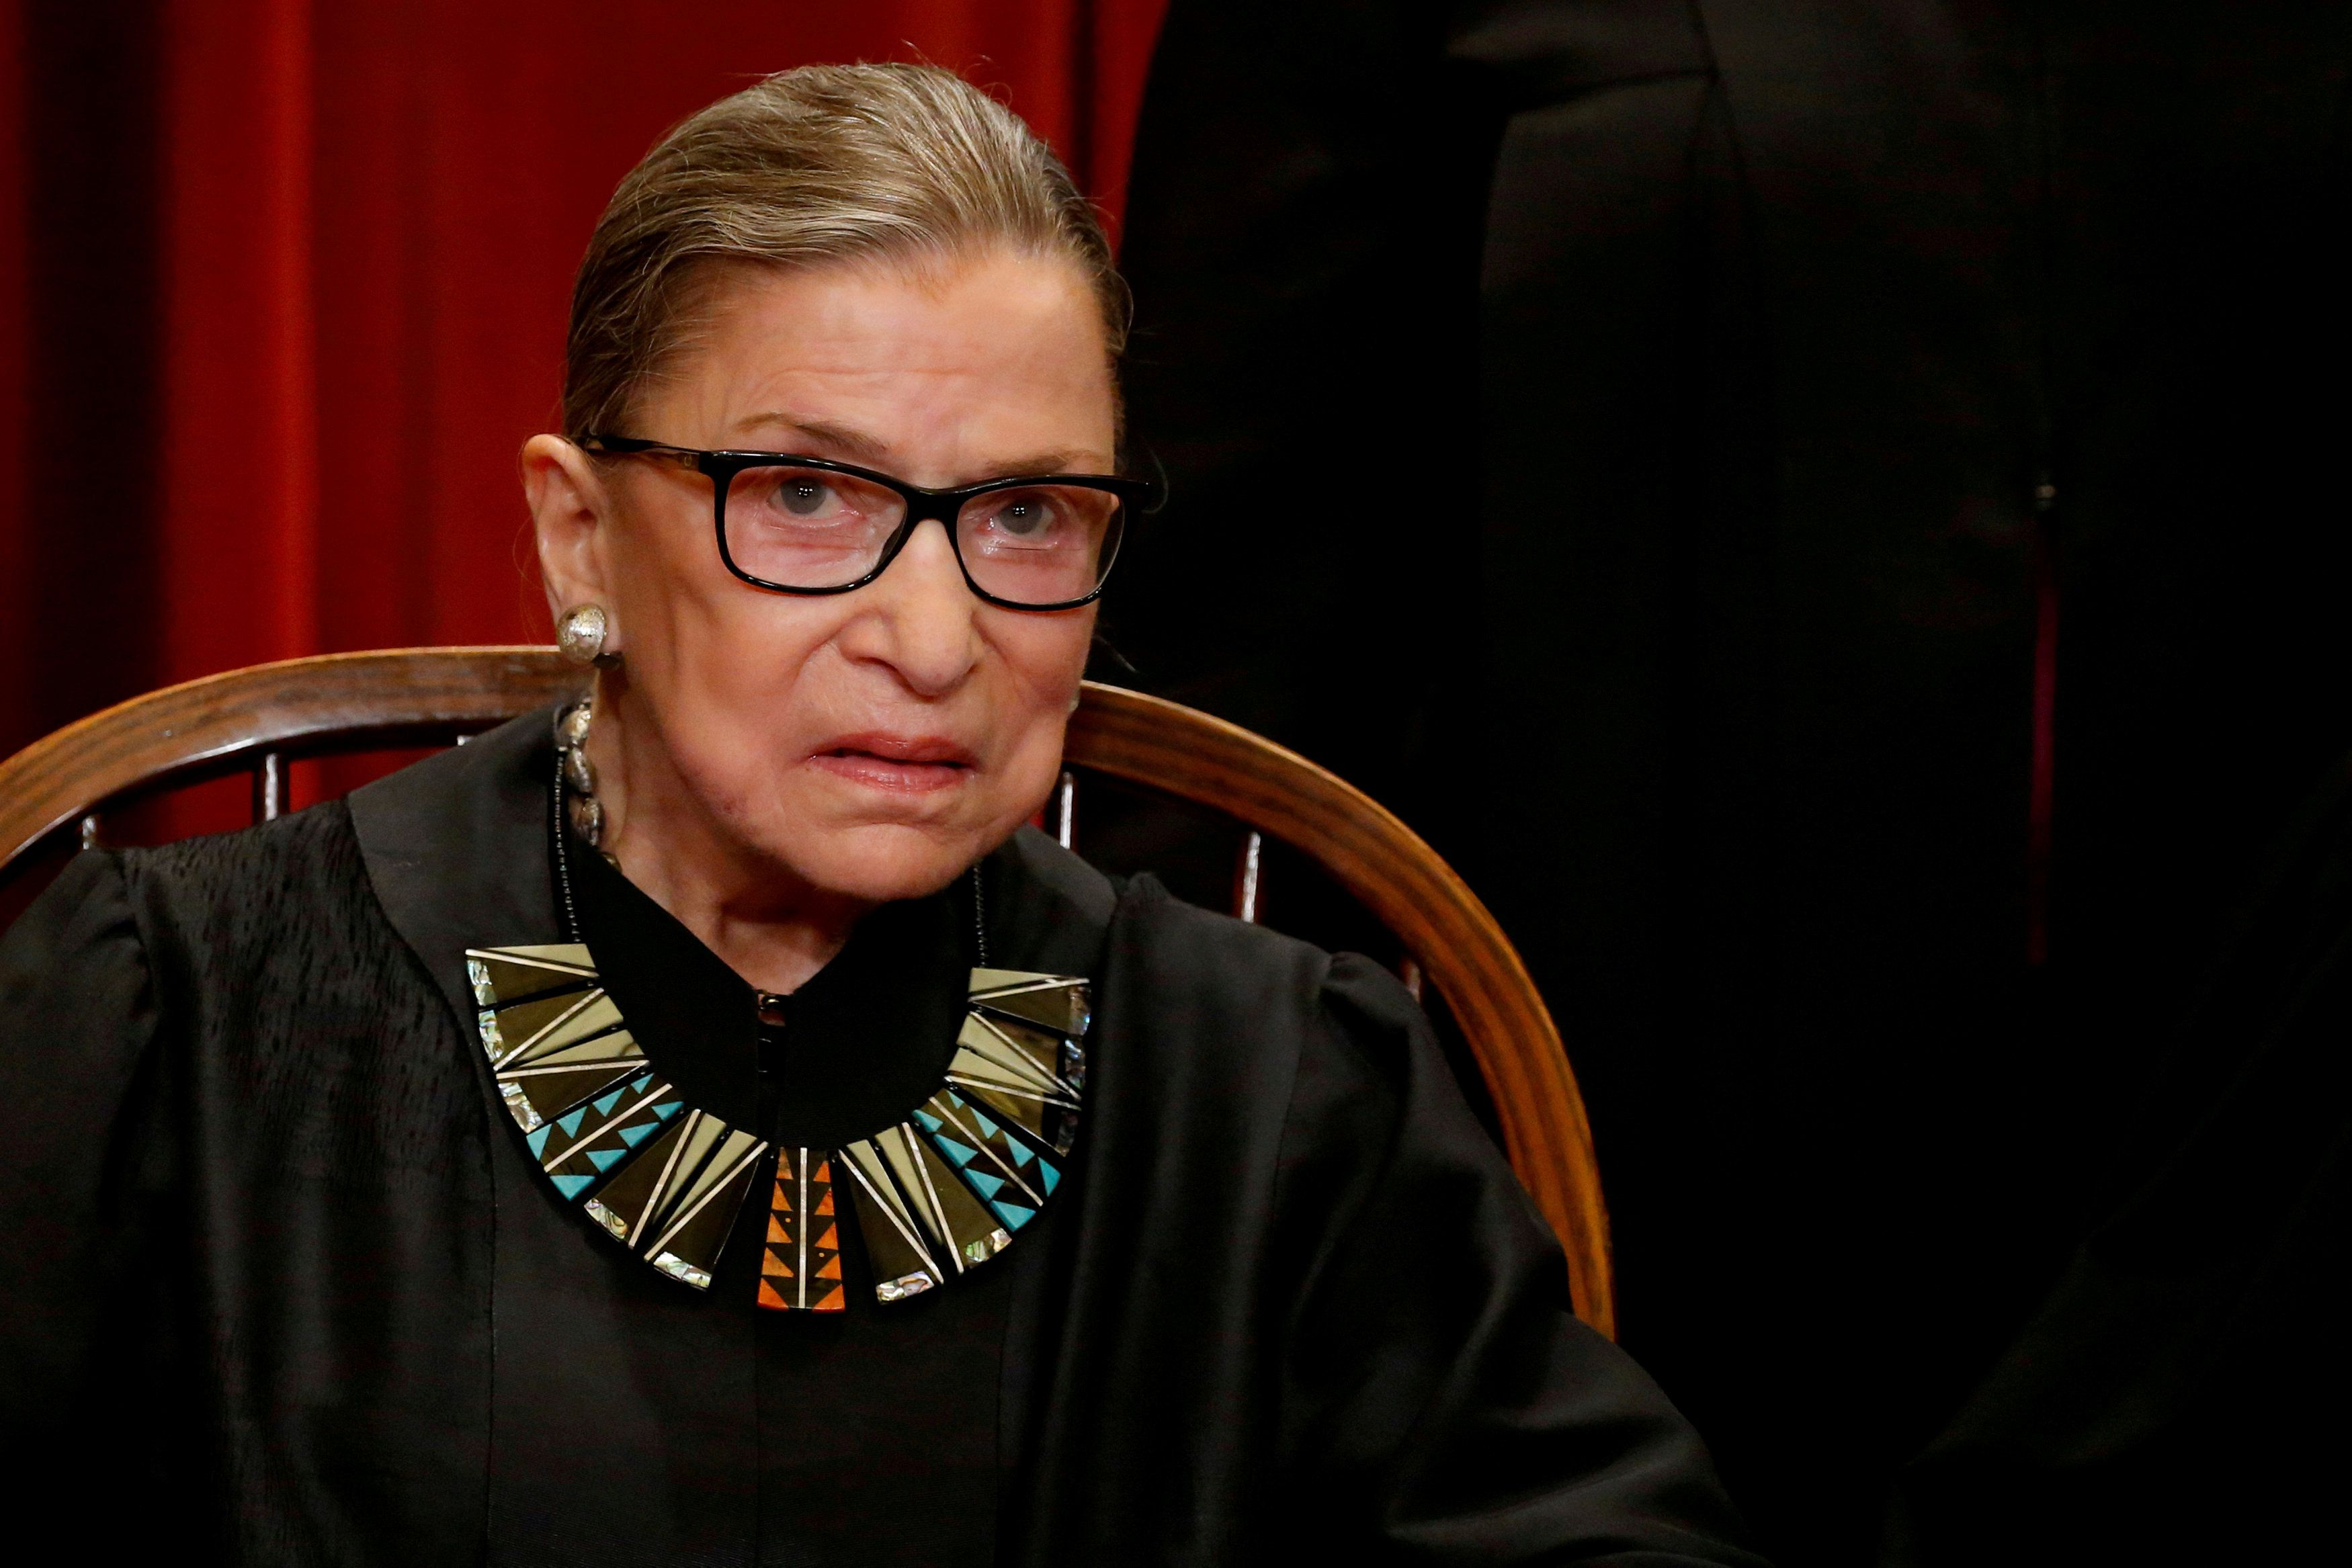 File photo of deceased US Supreme Court Justice Ruth Bader Ginsburg. Reuters